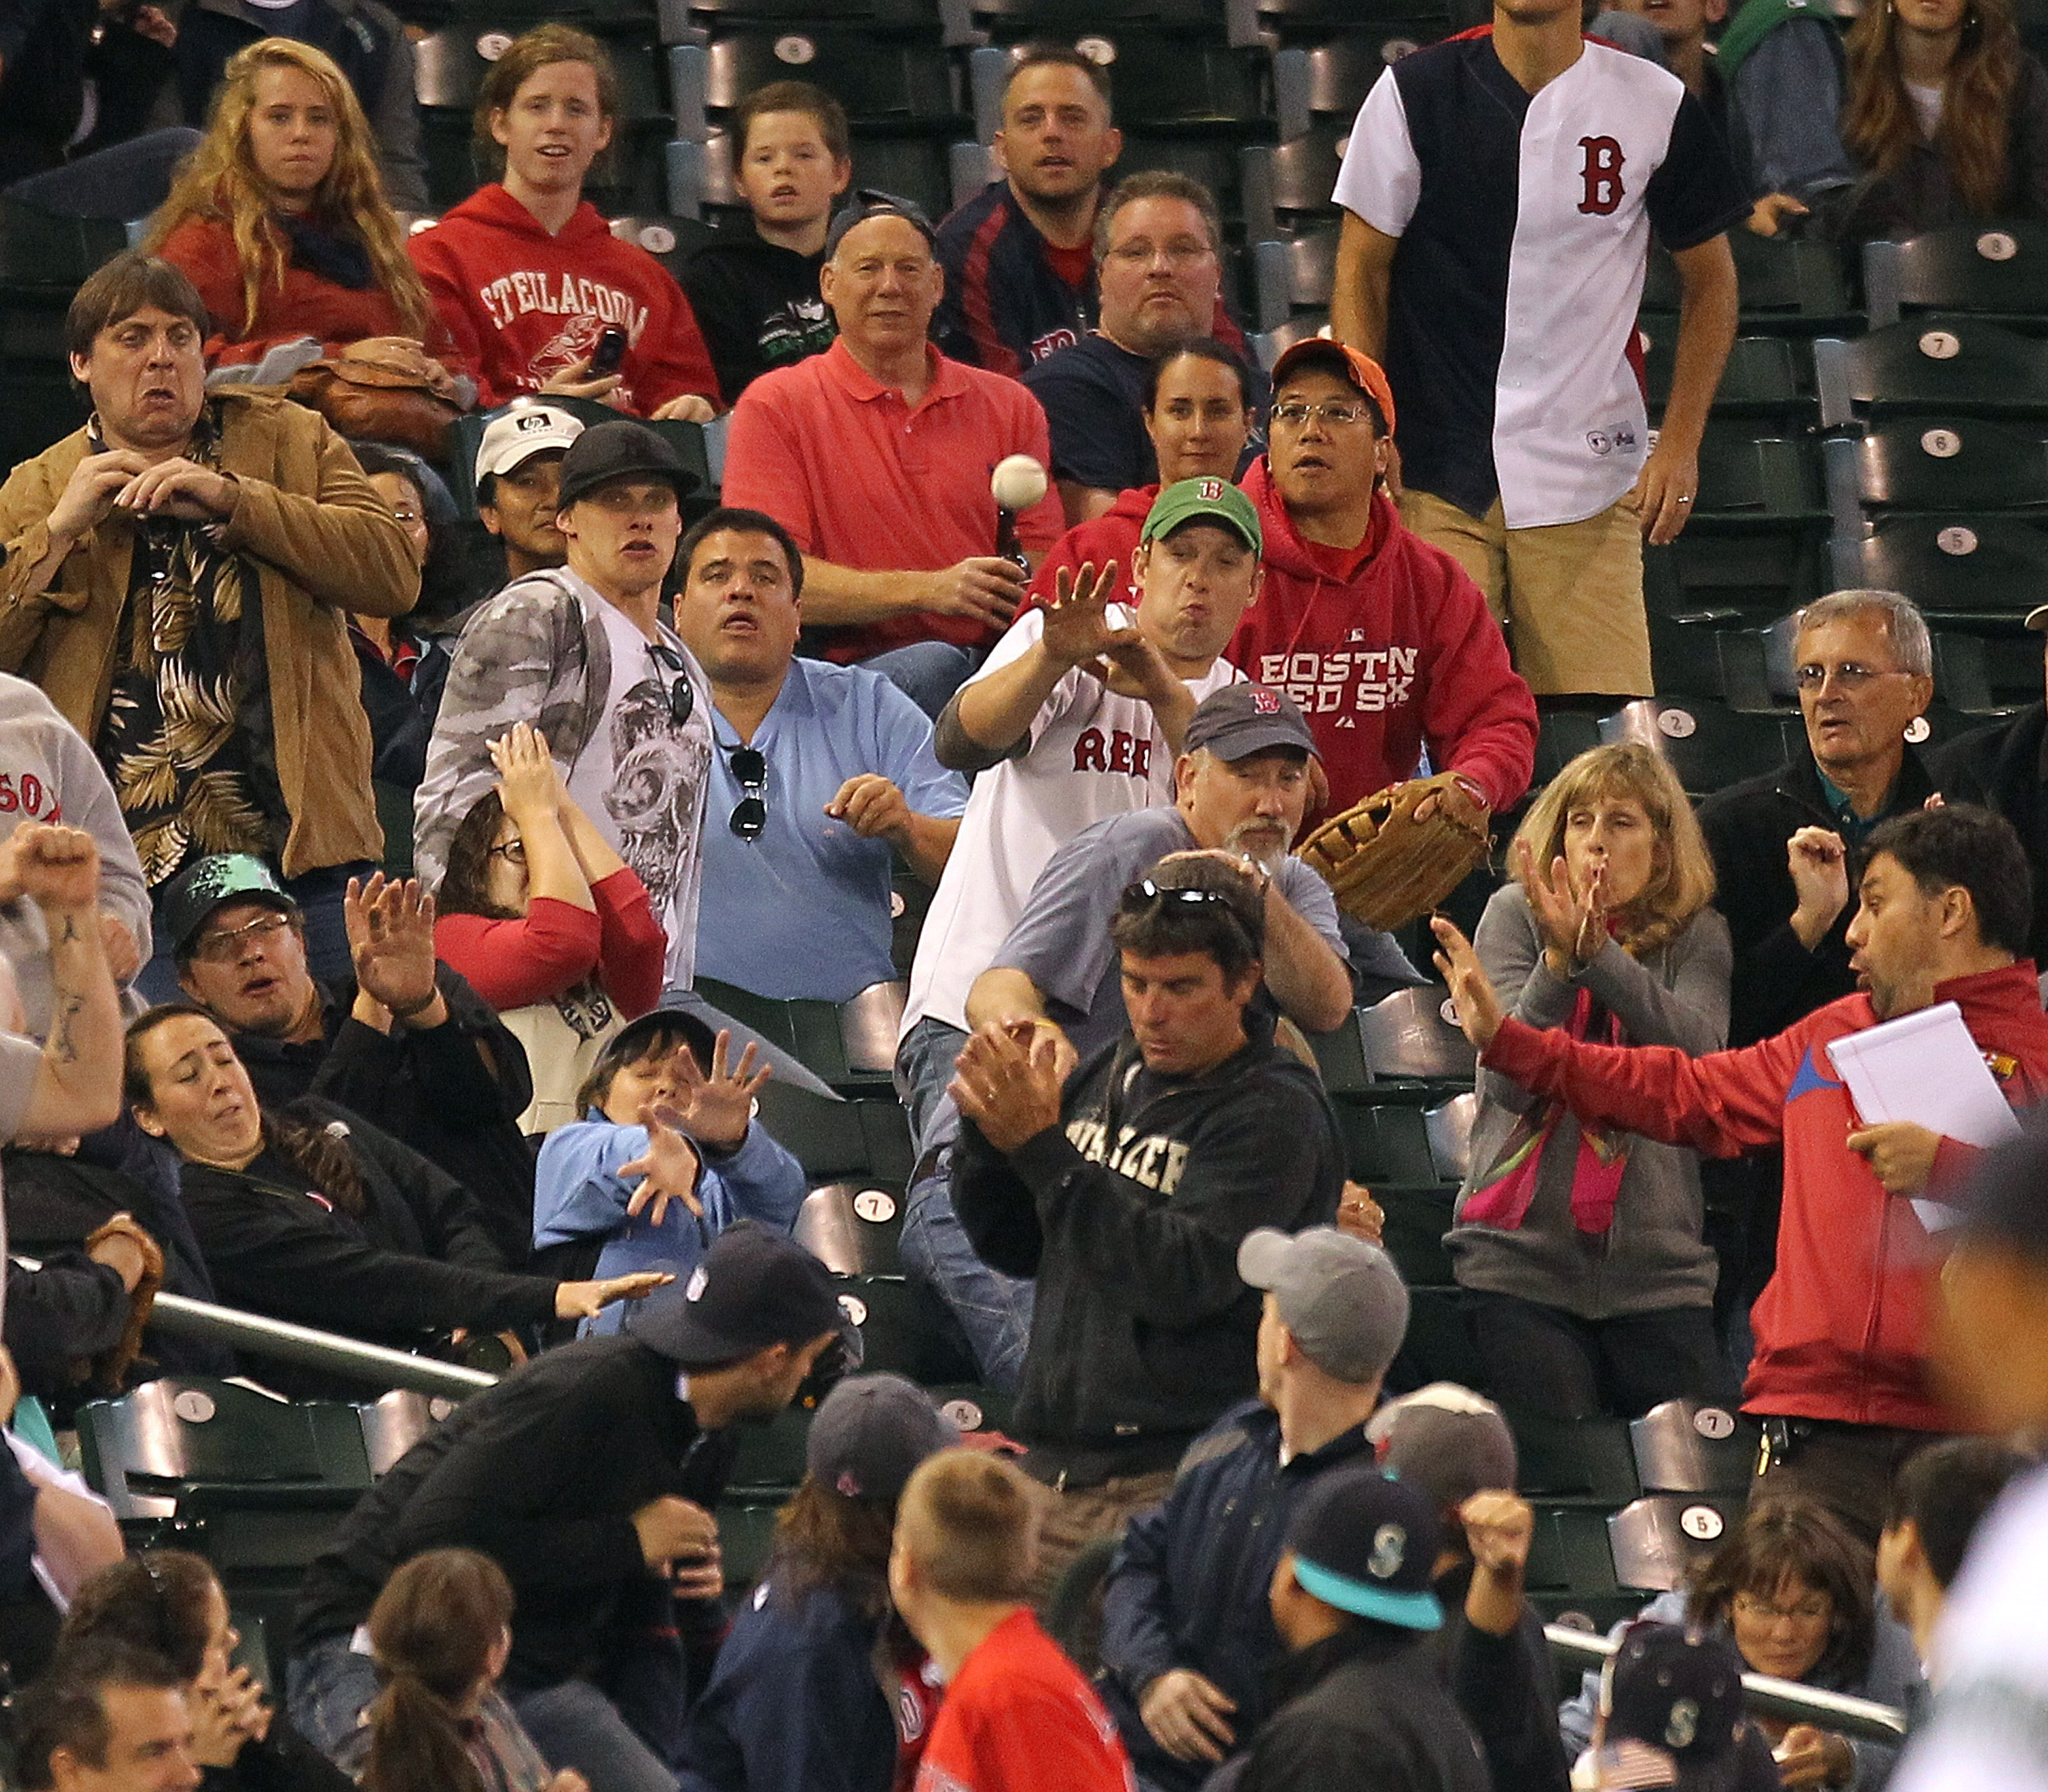 SEATTLE - SEPTEMBER 15:  Fans react to a foul ball by Marco Scutaro #16 of the Boston Red Sox during the game against the Seattle Mariners at Safeco Field on September 15, 2010 in Seattle, Washington. (Photo by Otto Greule Jr/Getty Images)